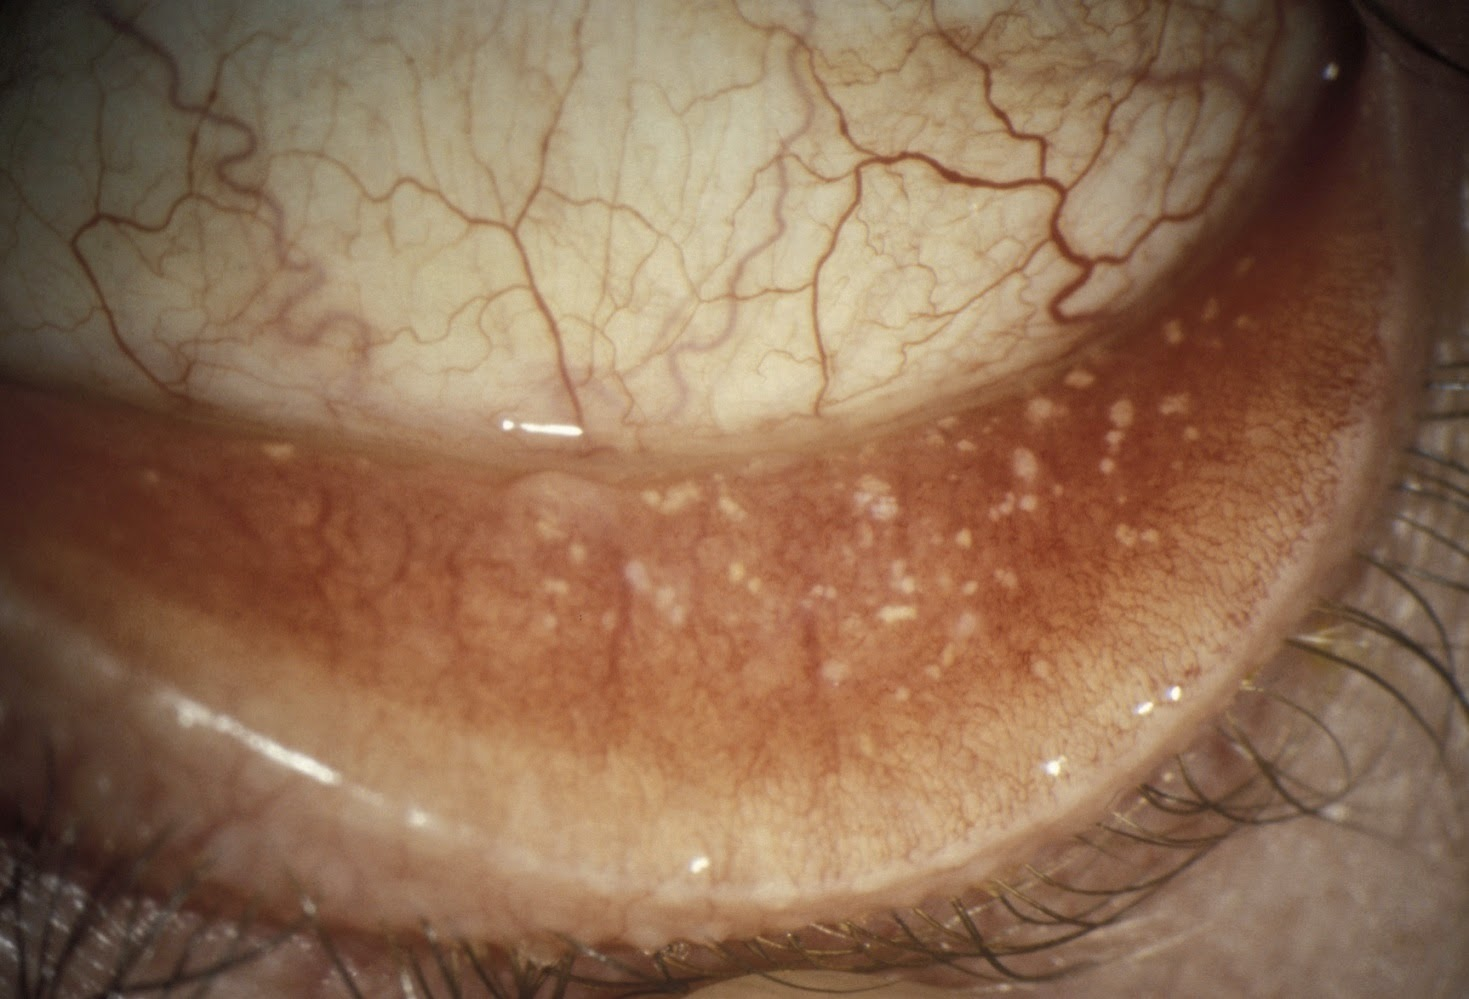 There S A Growth On My Eyelid Conjunctival Concretions